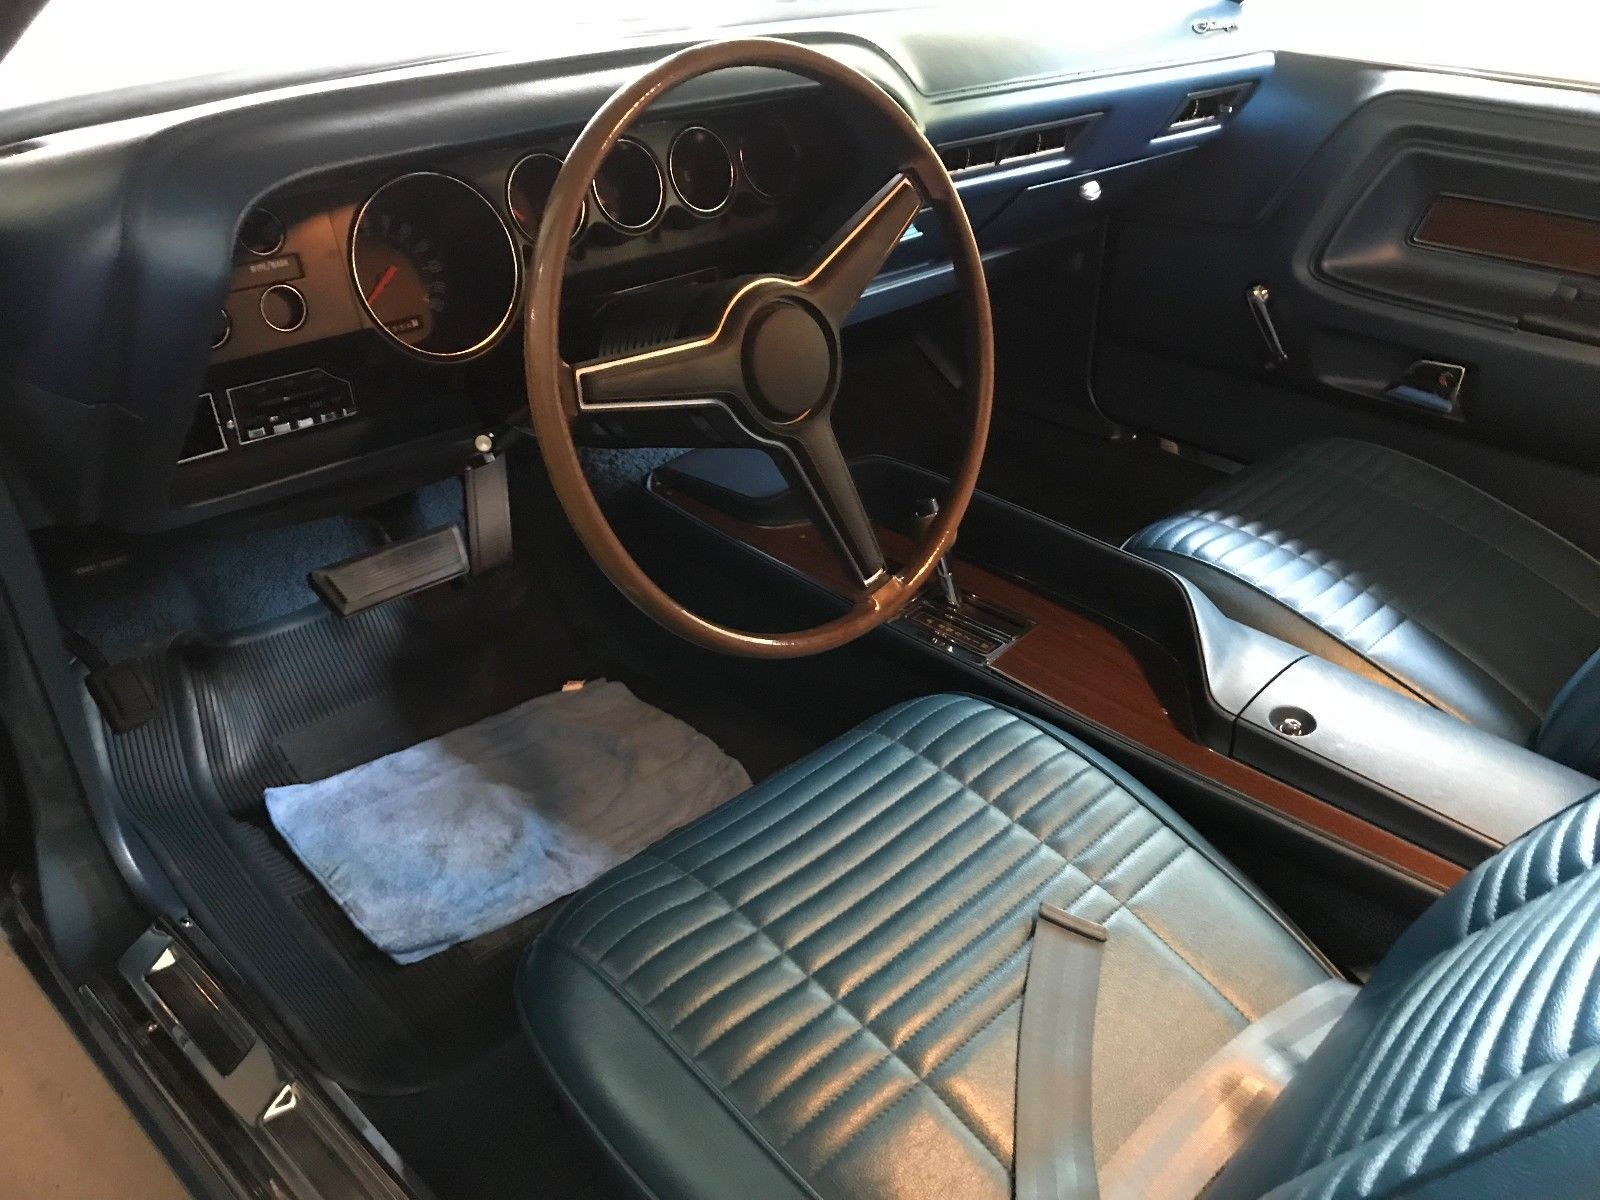 1970 Dodge Challenger drivers seat